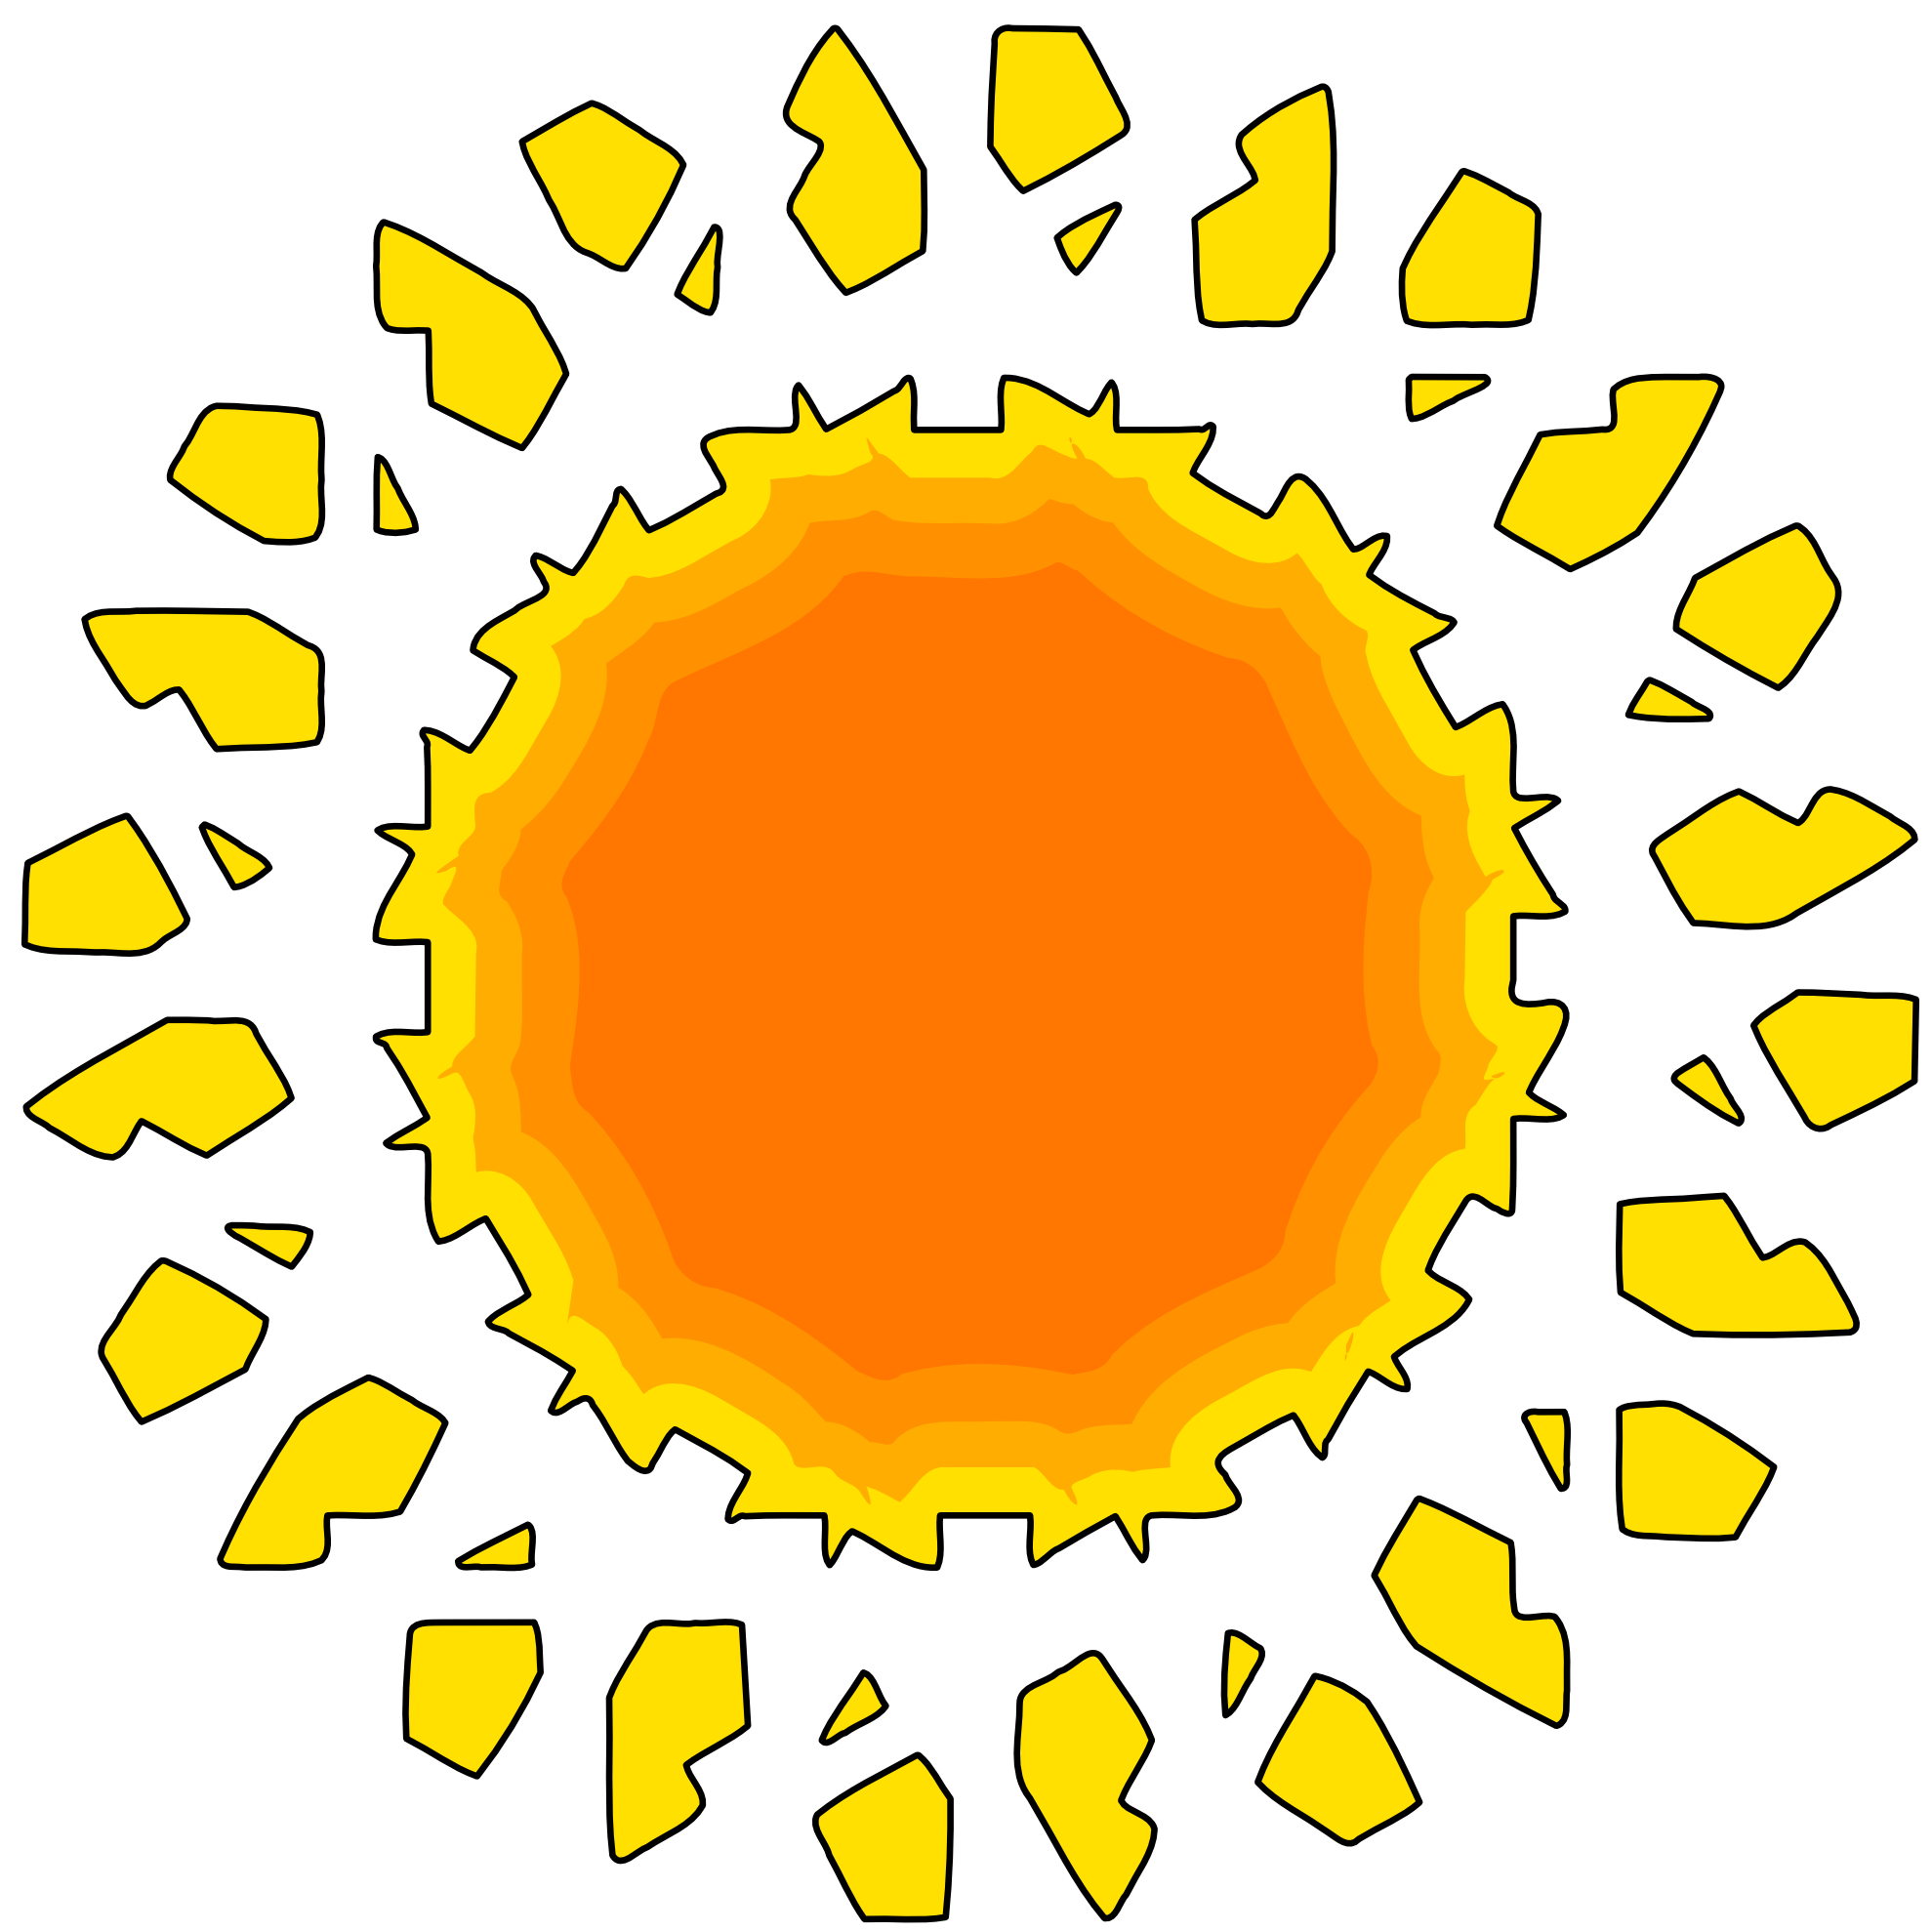 the Sun Variationen Muster | Clipart Panda - Free Clipart Images clip freeuse